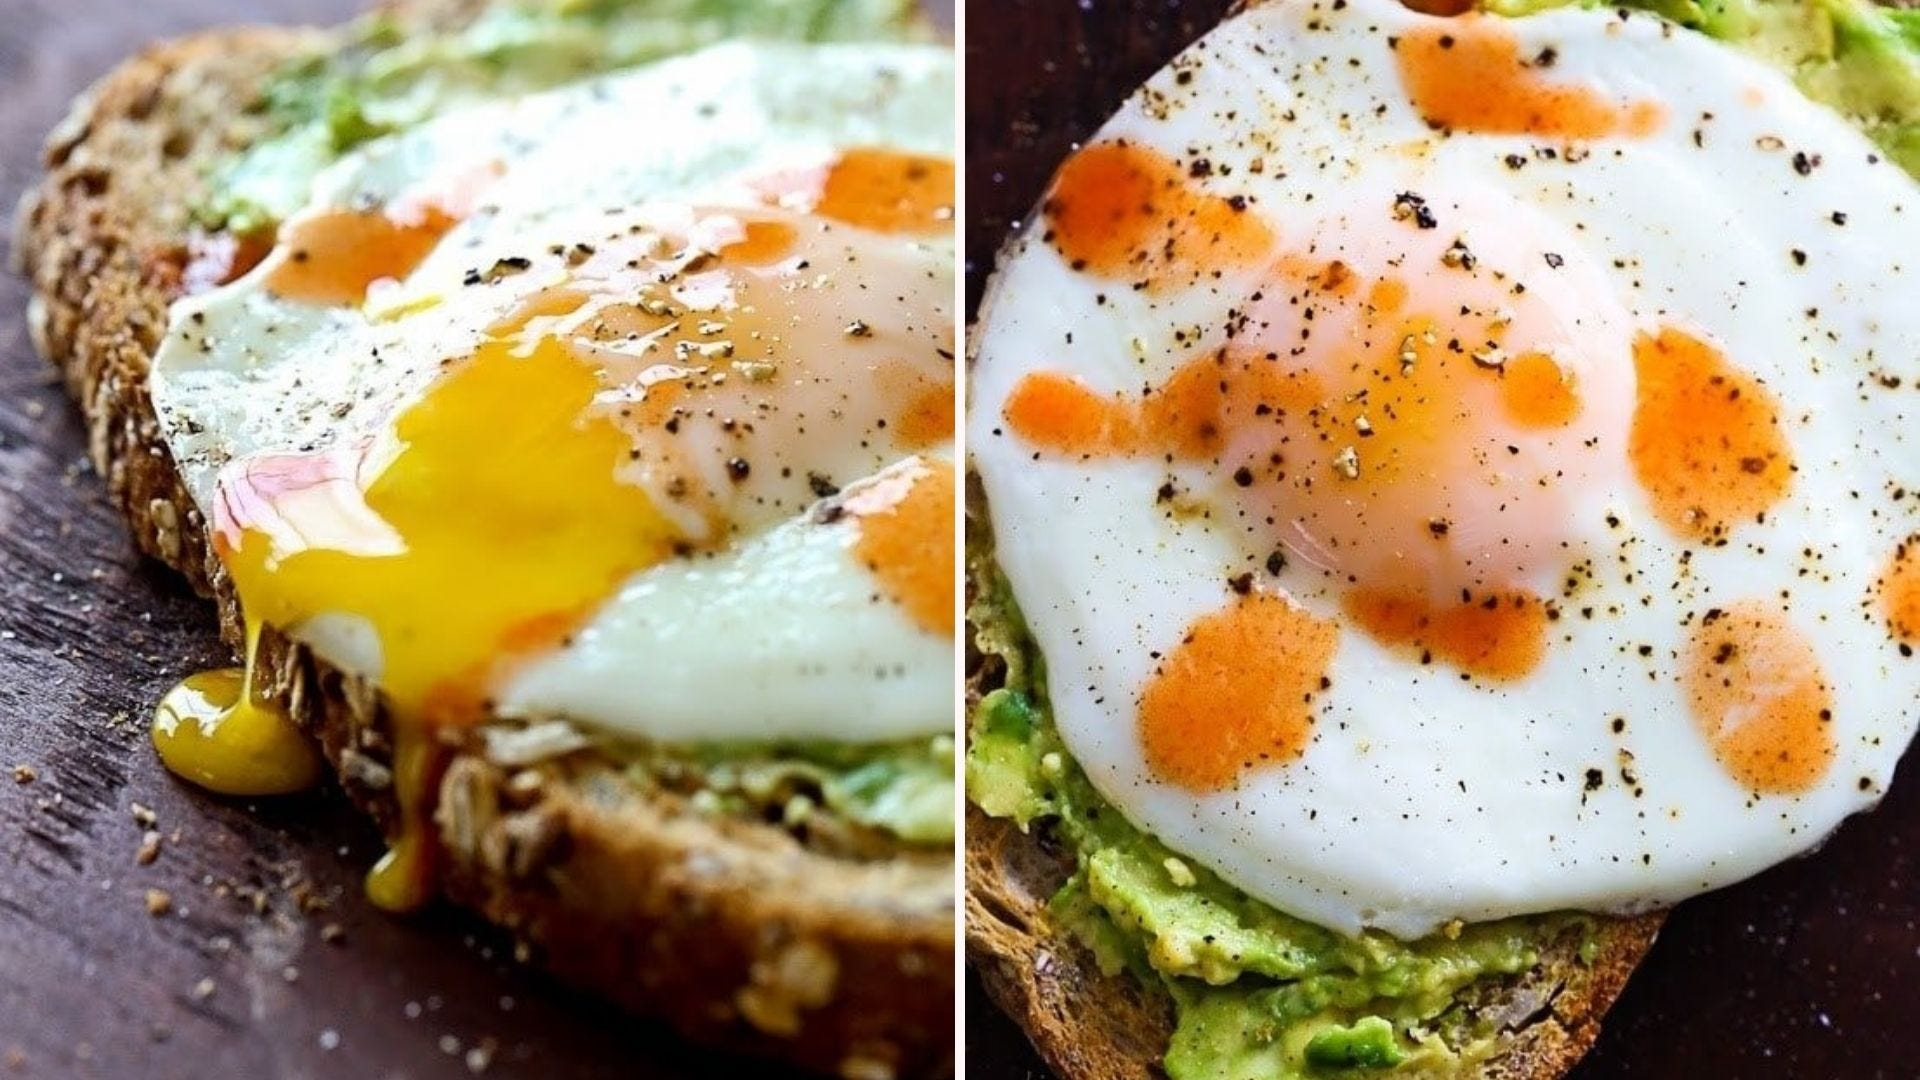 Two images: The left image is of a yolky sunny side egg placed over avocado toast and the right image is an overshot image of the same avocado toast with egg topped with hot sauce and cracked pepper.